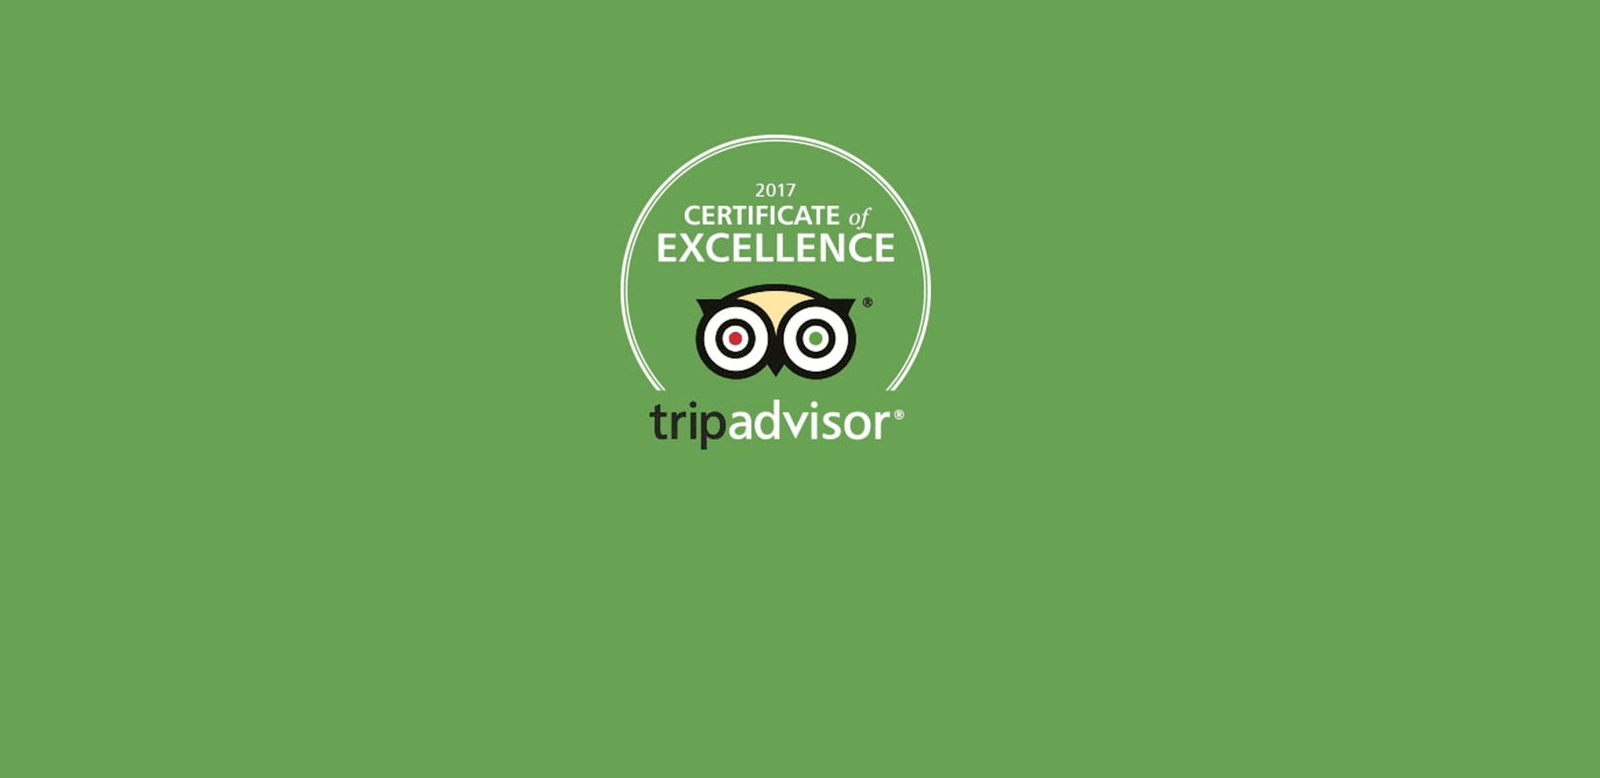 WE'RE CELEBRATING OUR TRIPADVISOR CERTIFICATE OF EXCELLENCE AWARD 2017